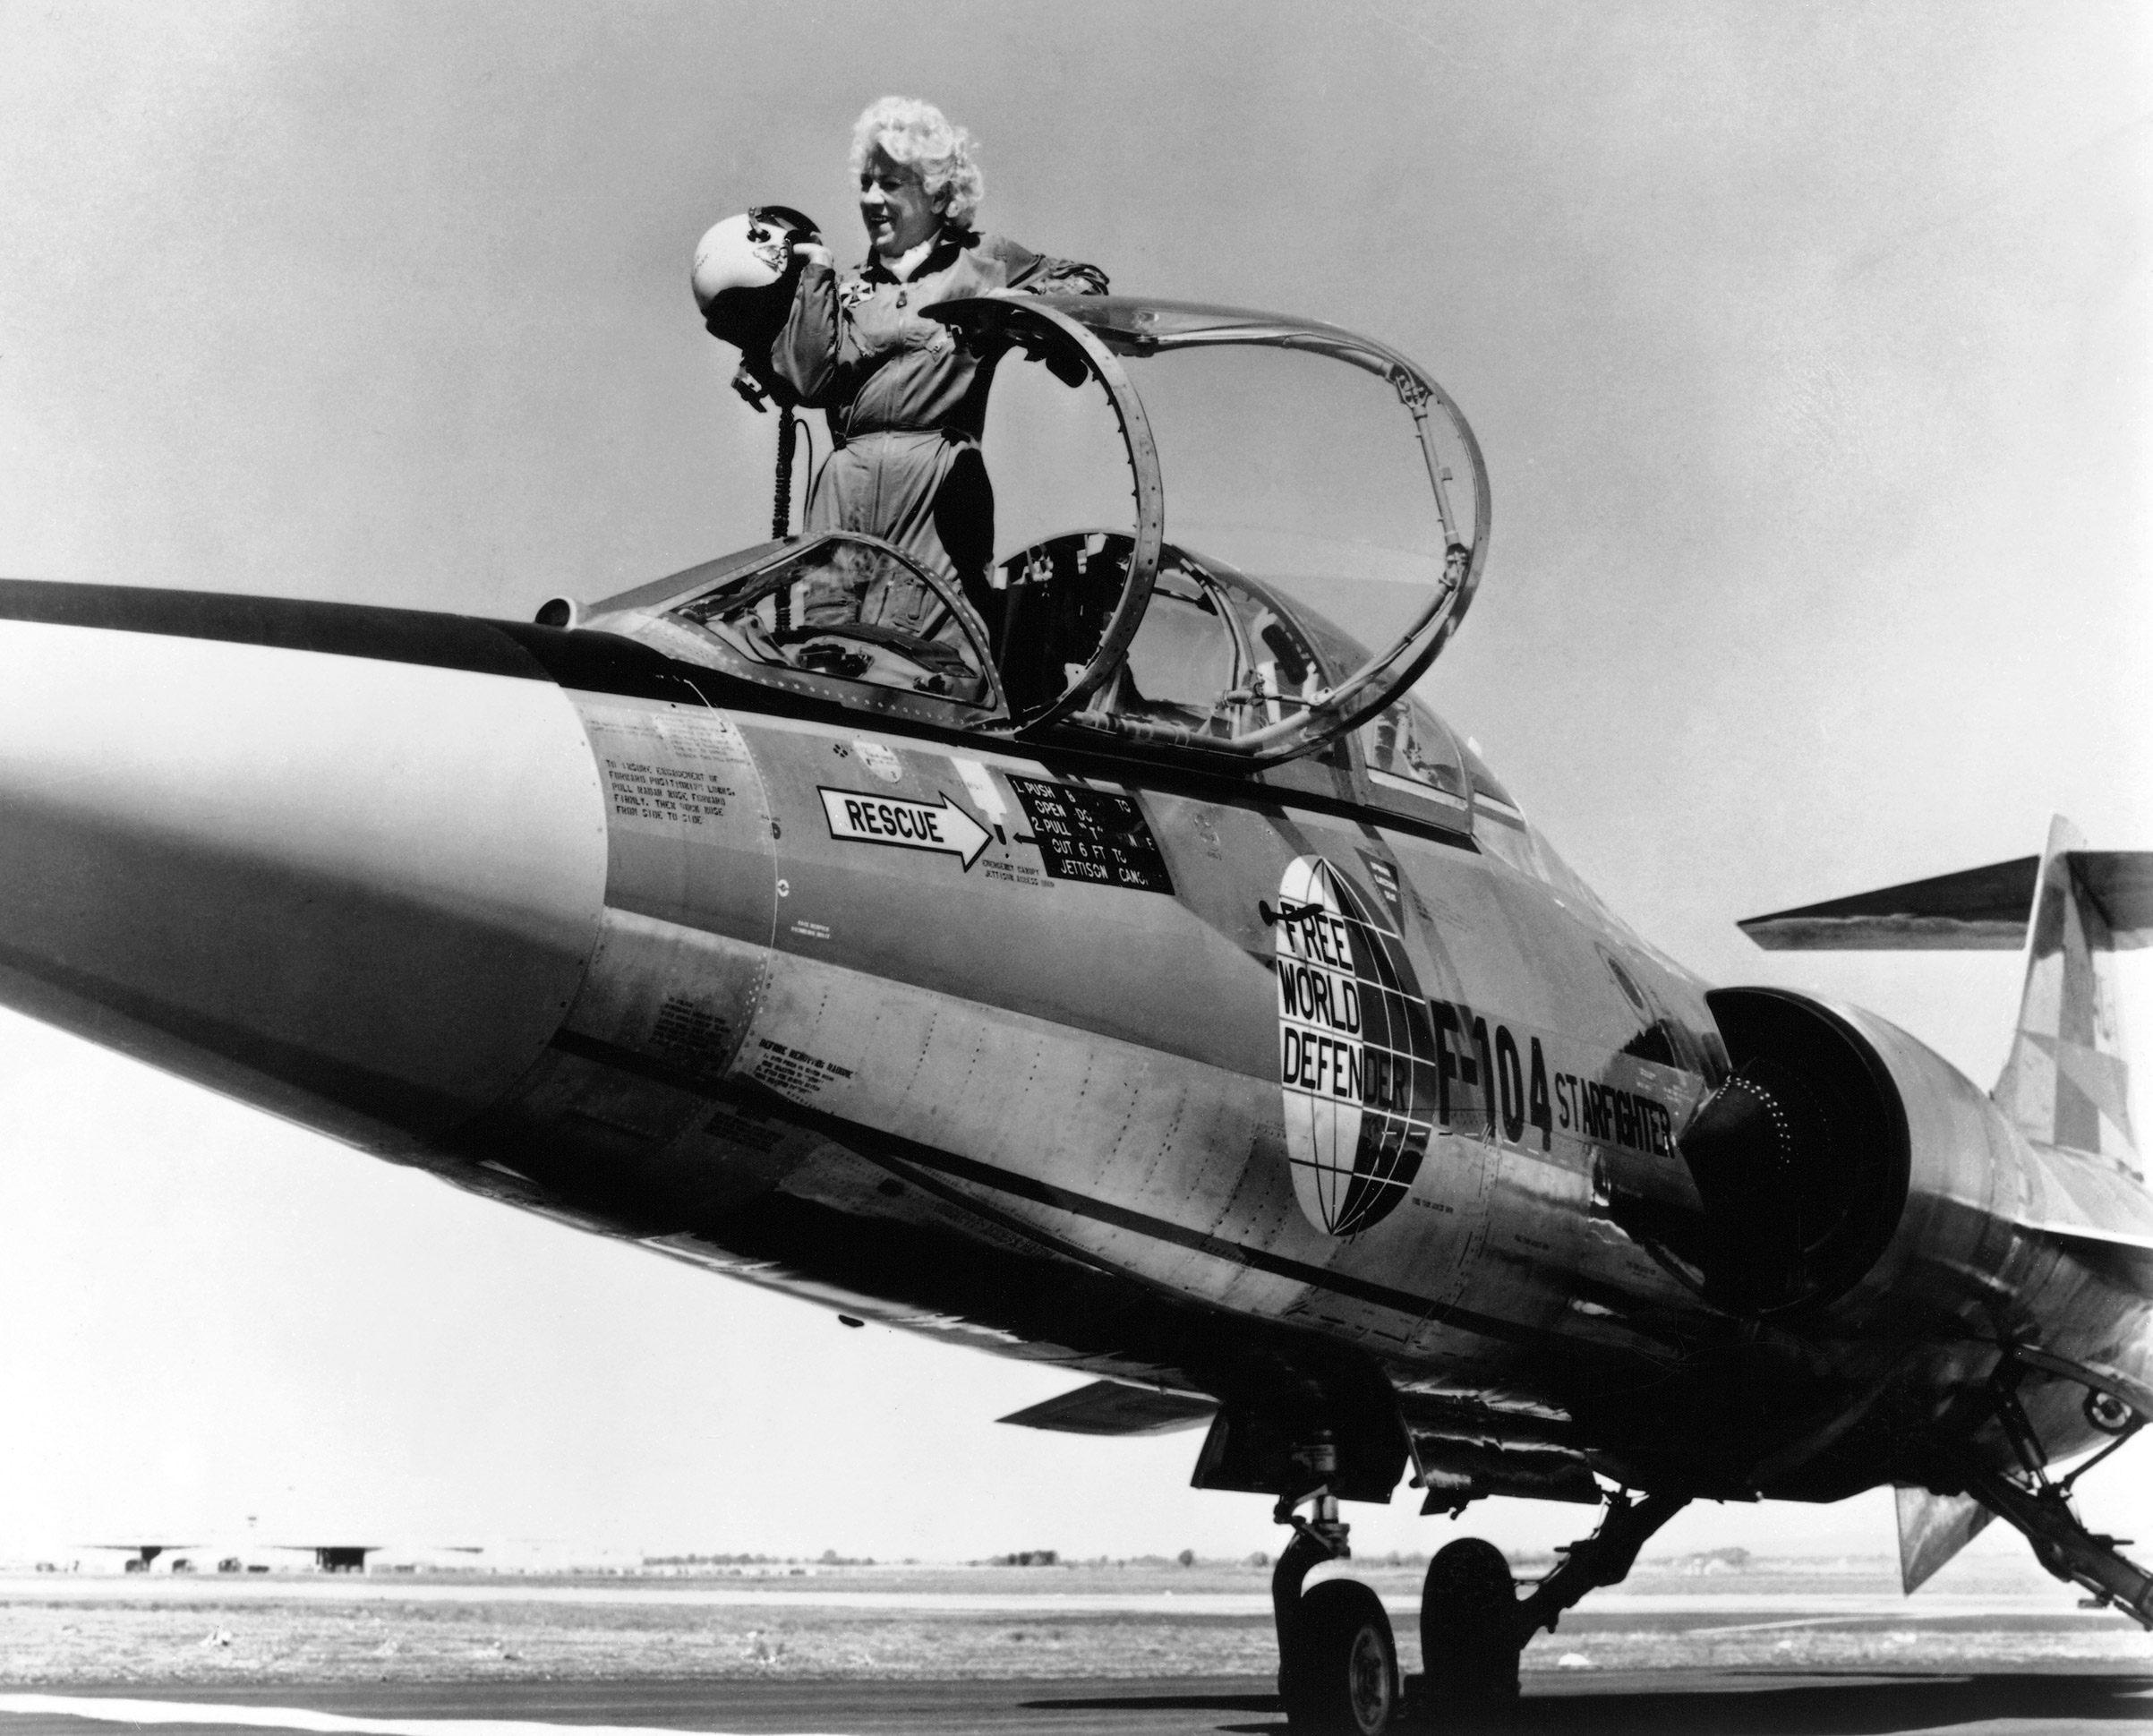 JACQUELINE COCHRAN became the first woman to break the sound barrier in 1953.